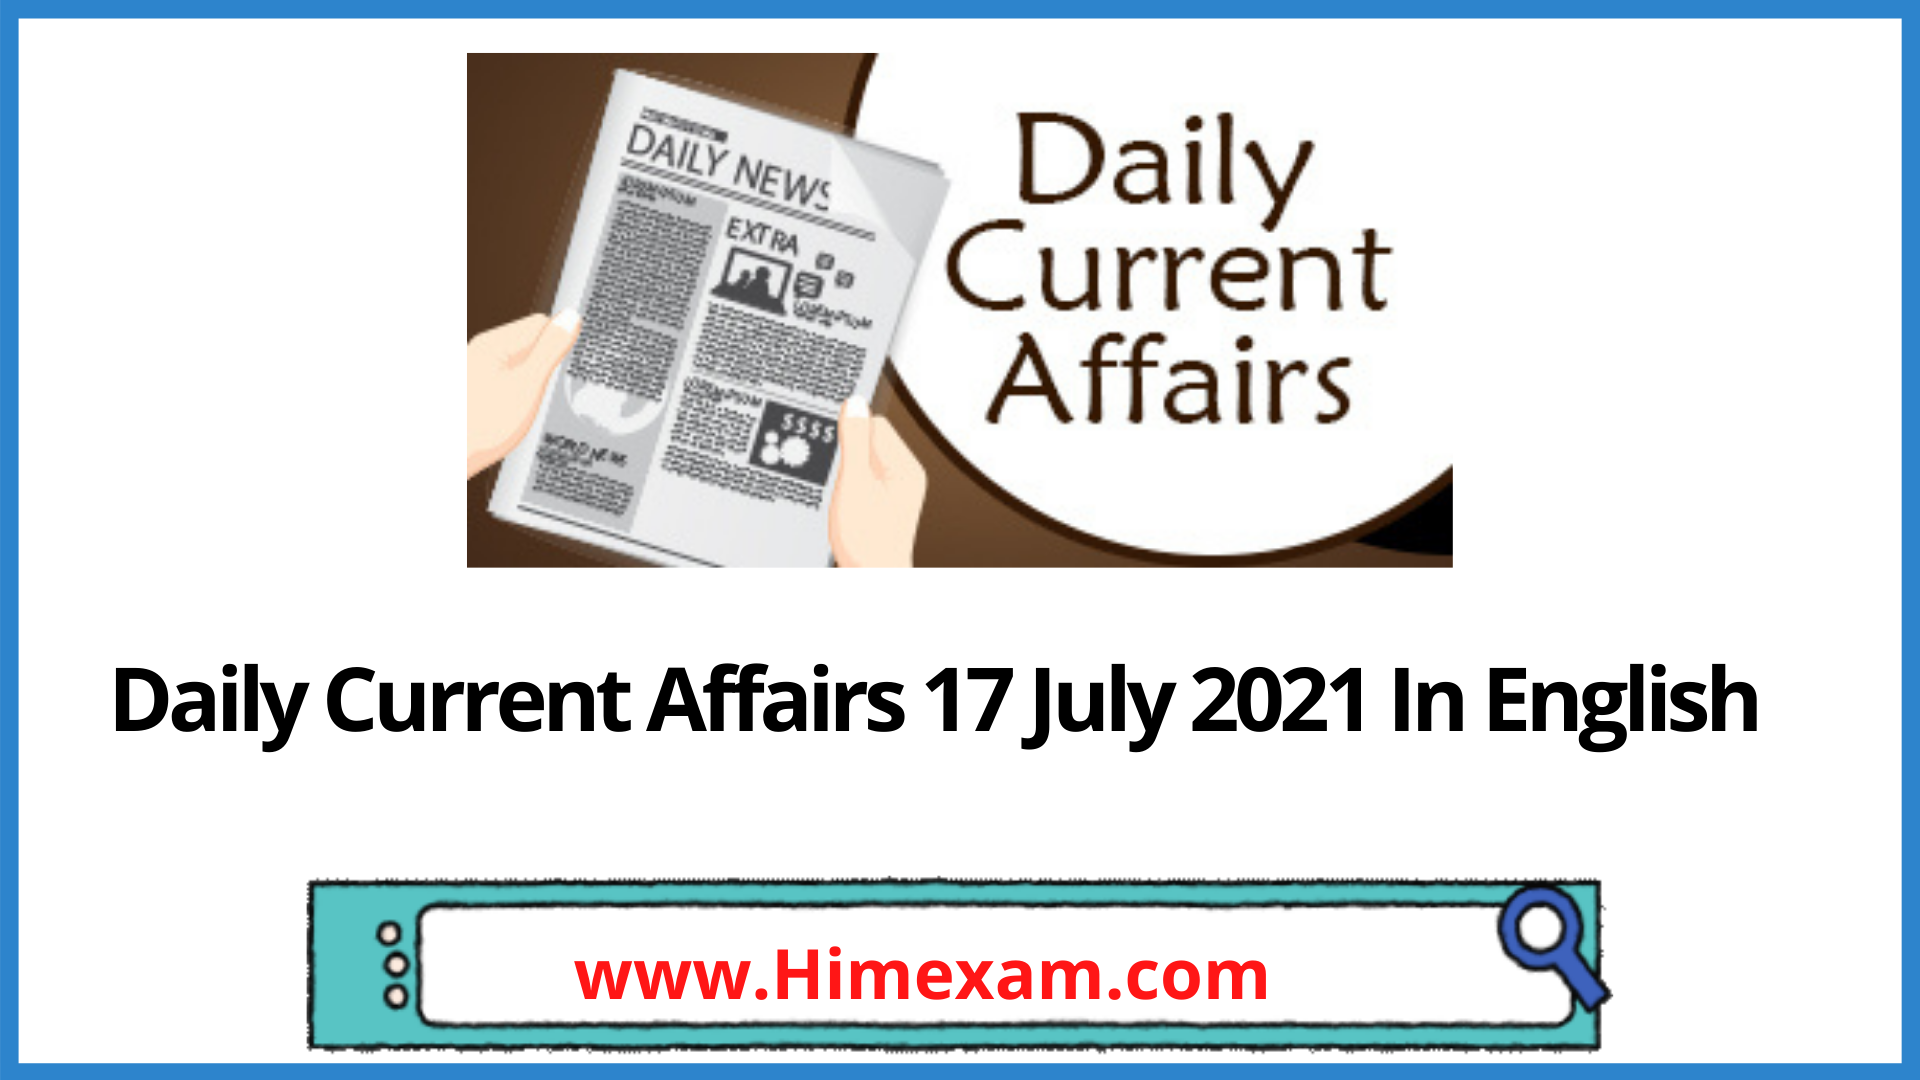 Daily Current Affairs 17 July 2021 In English